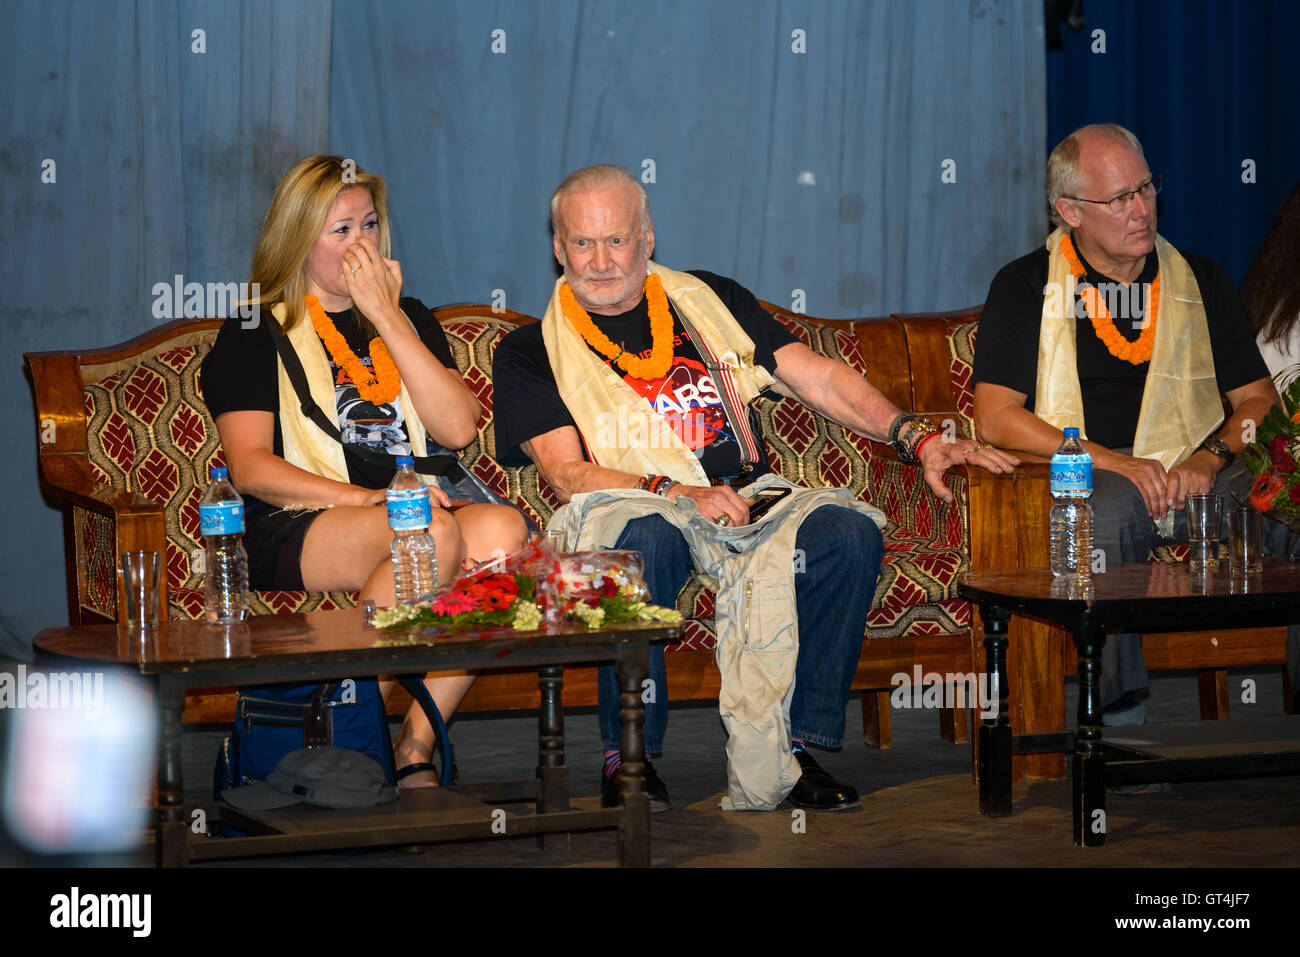 Kathmandu, Nepal. 8th September, 2016. American former astronaut Buzz Aldrin (centre) is at the Nepal Academy Hall - Stock Image